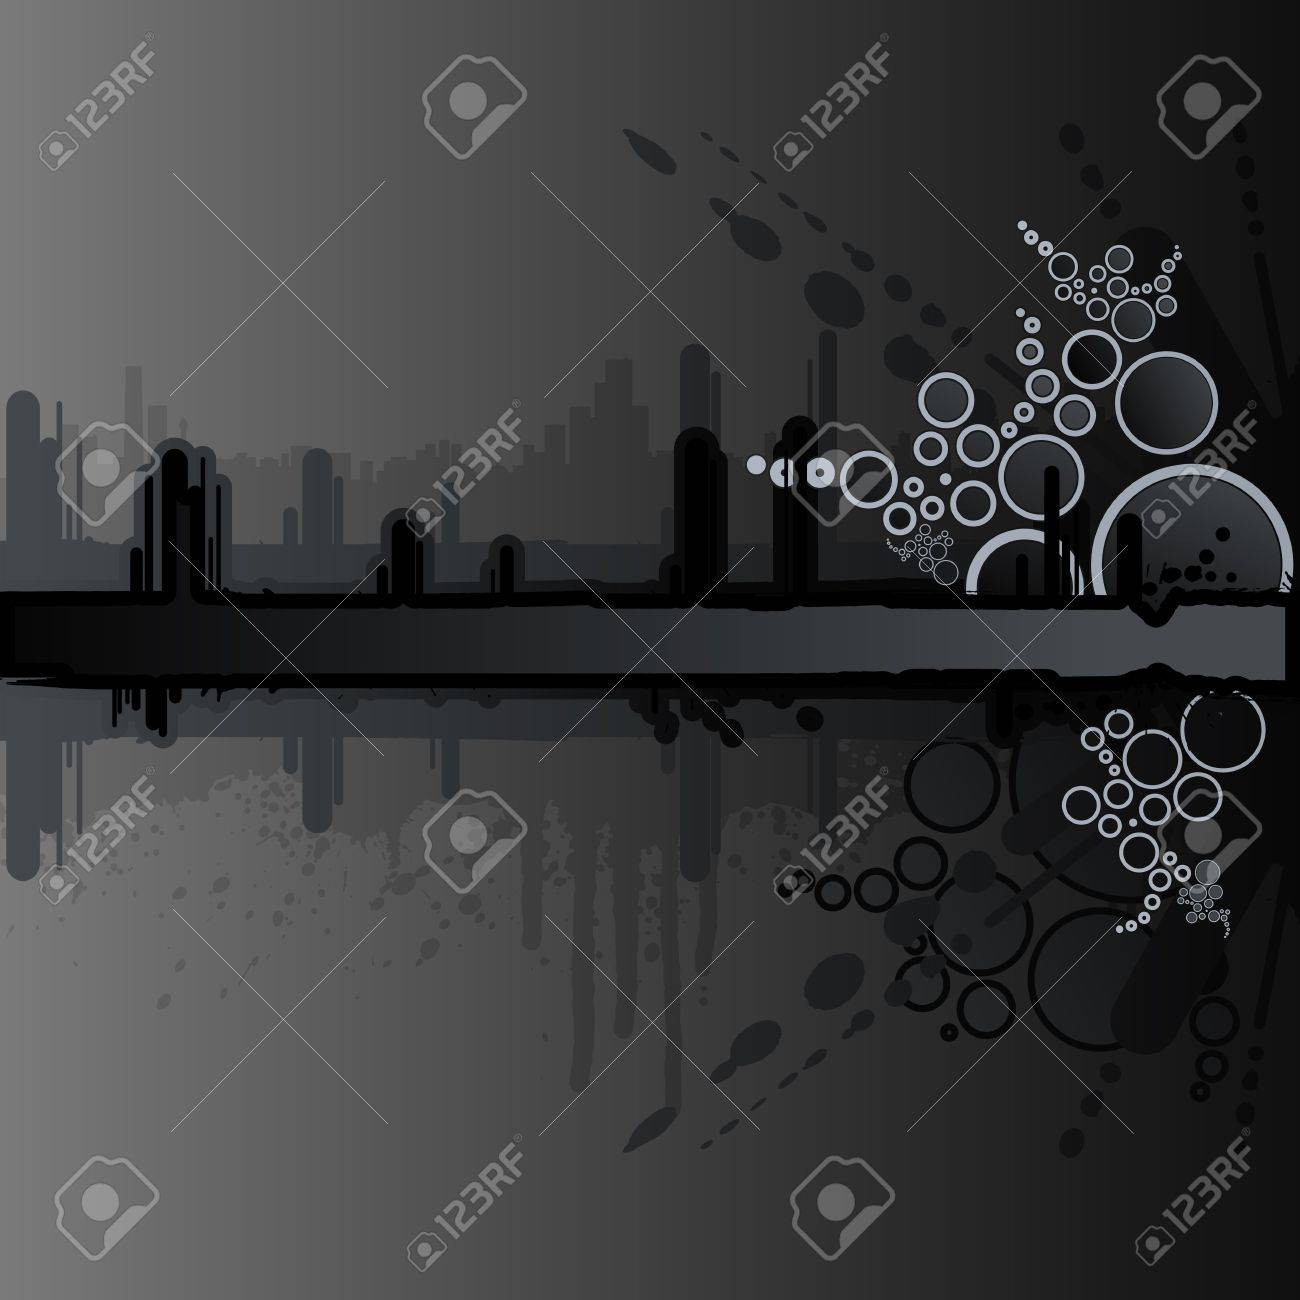 Vector illustration of a grunge and retro dark black background with ink splatter elements, retro circles and drops and stripe for custom text. Urban cityscape backdrop. - 3496502